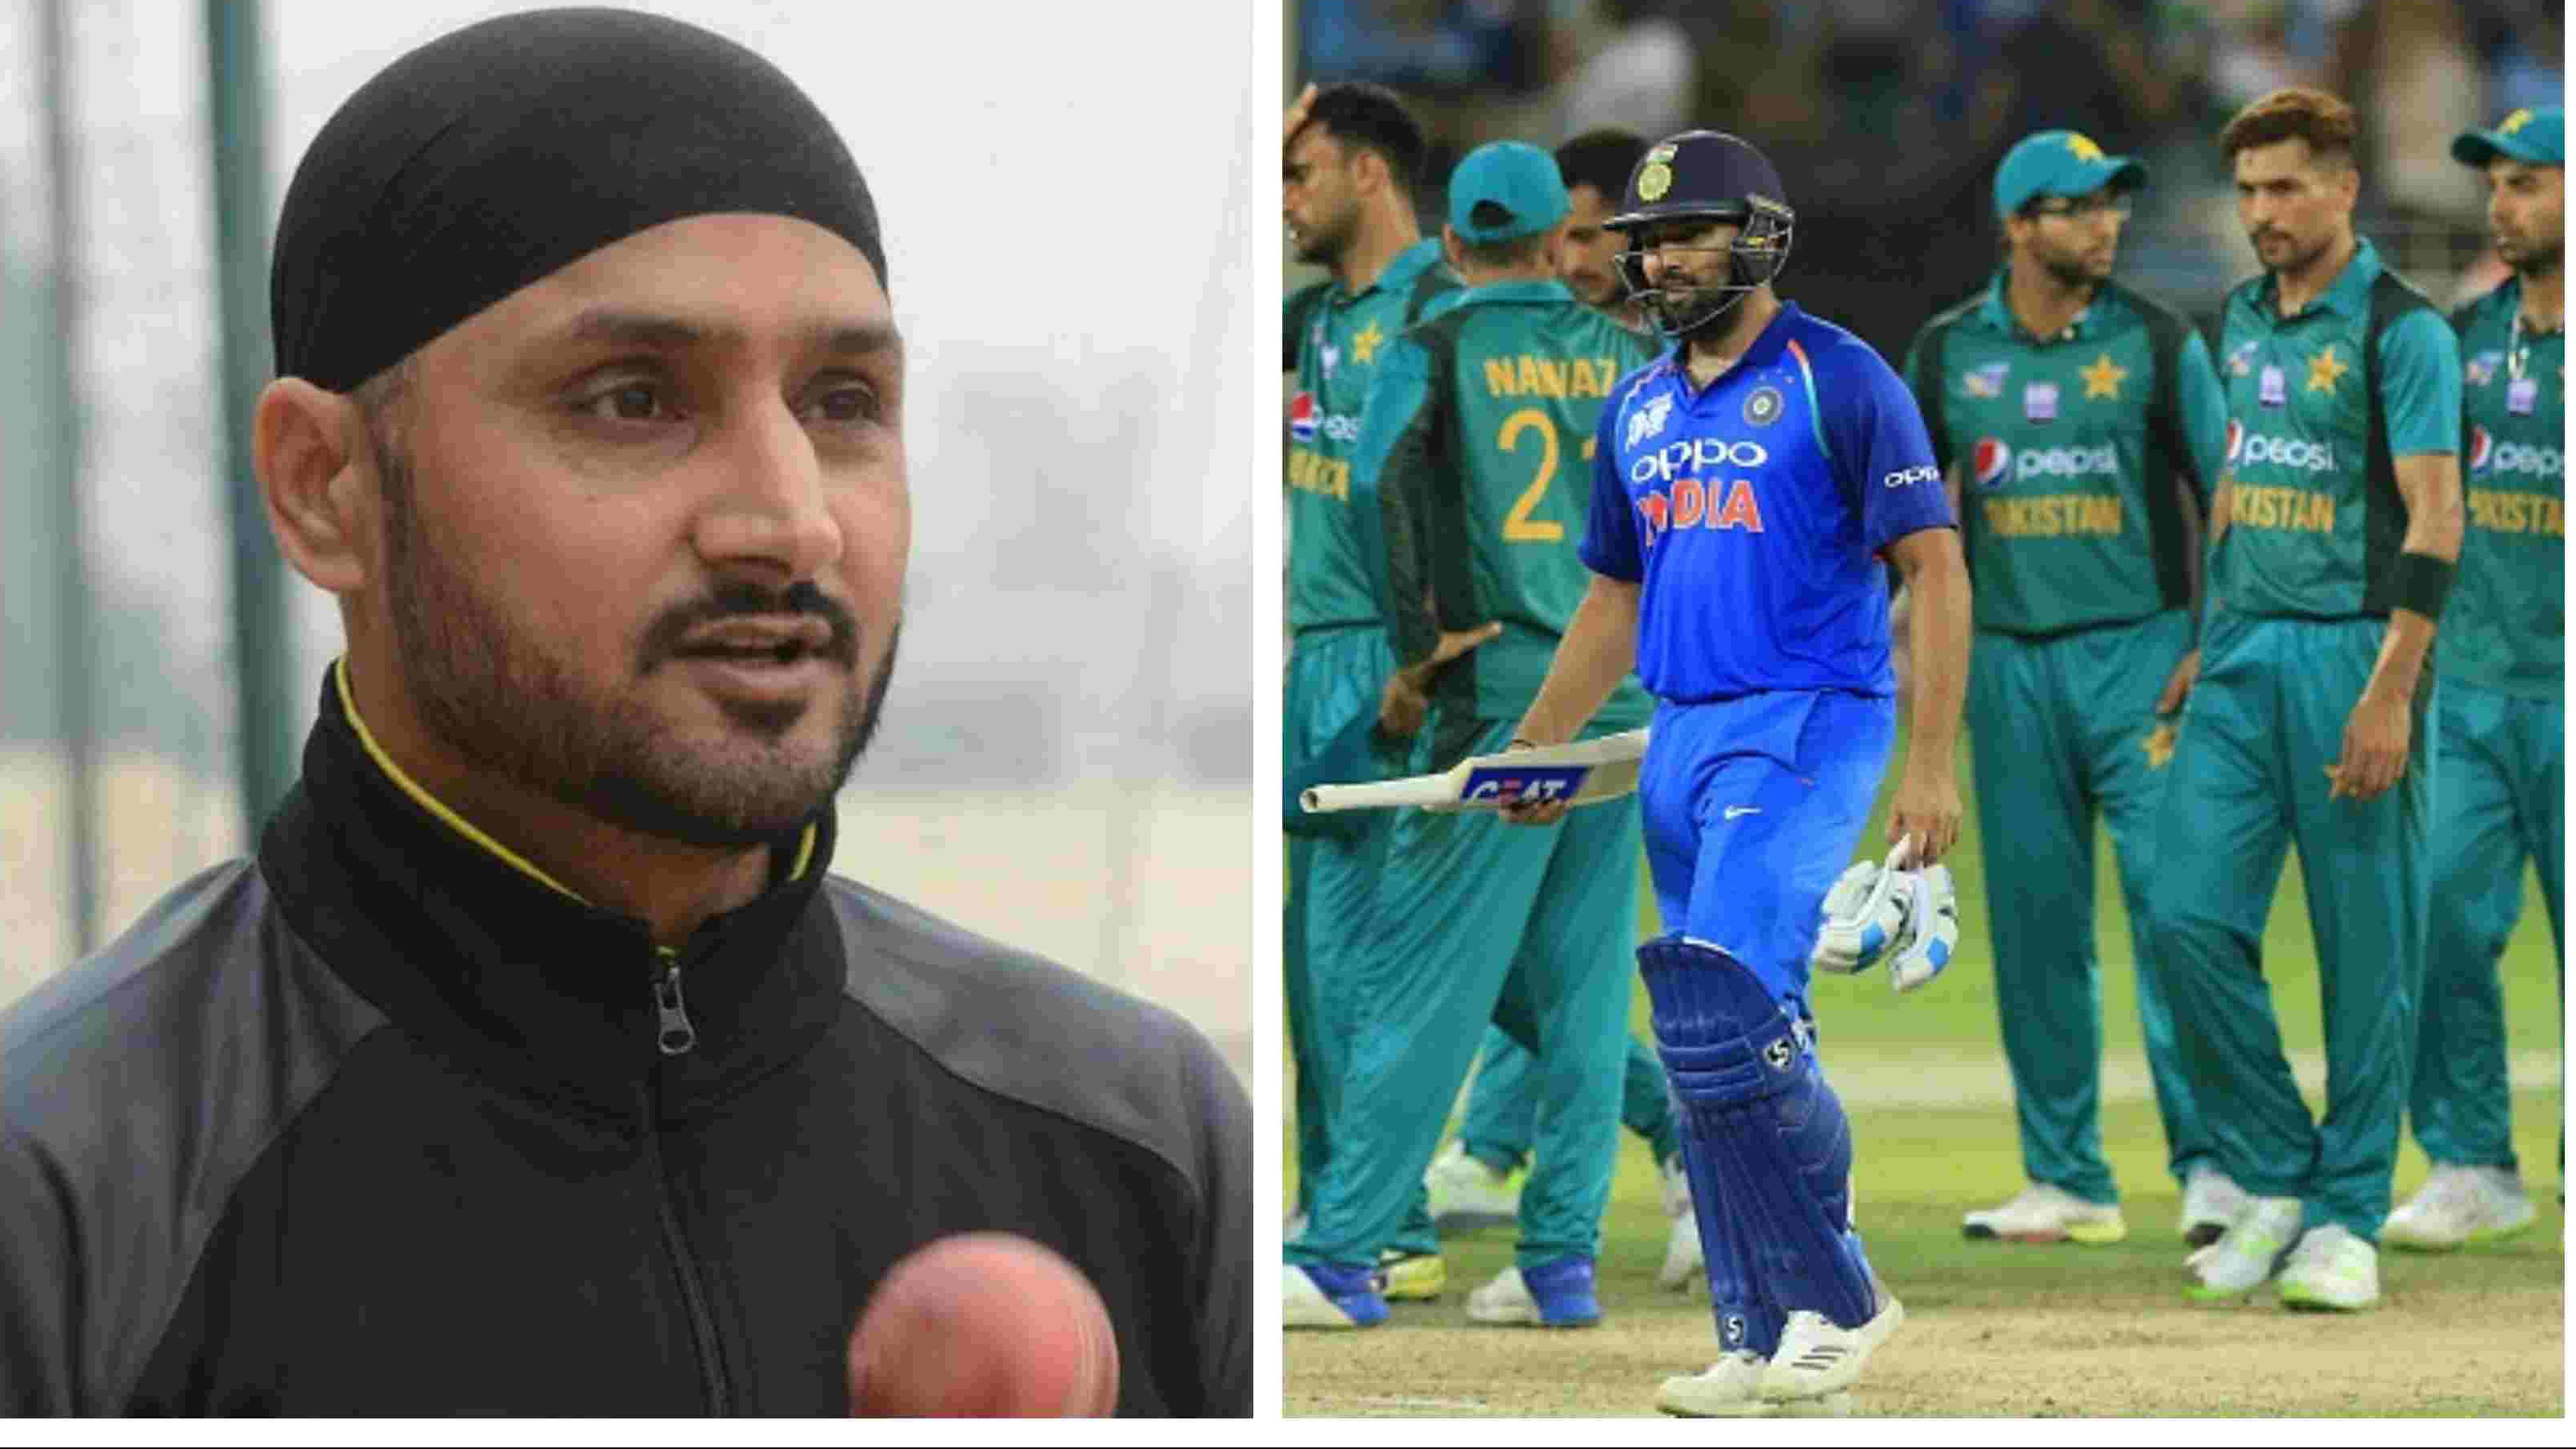 ASIA CUP 2018: Harbhajan Singh highlights the gulf in class between India and Pakistan